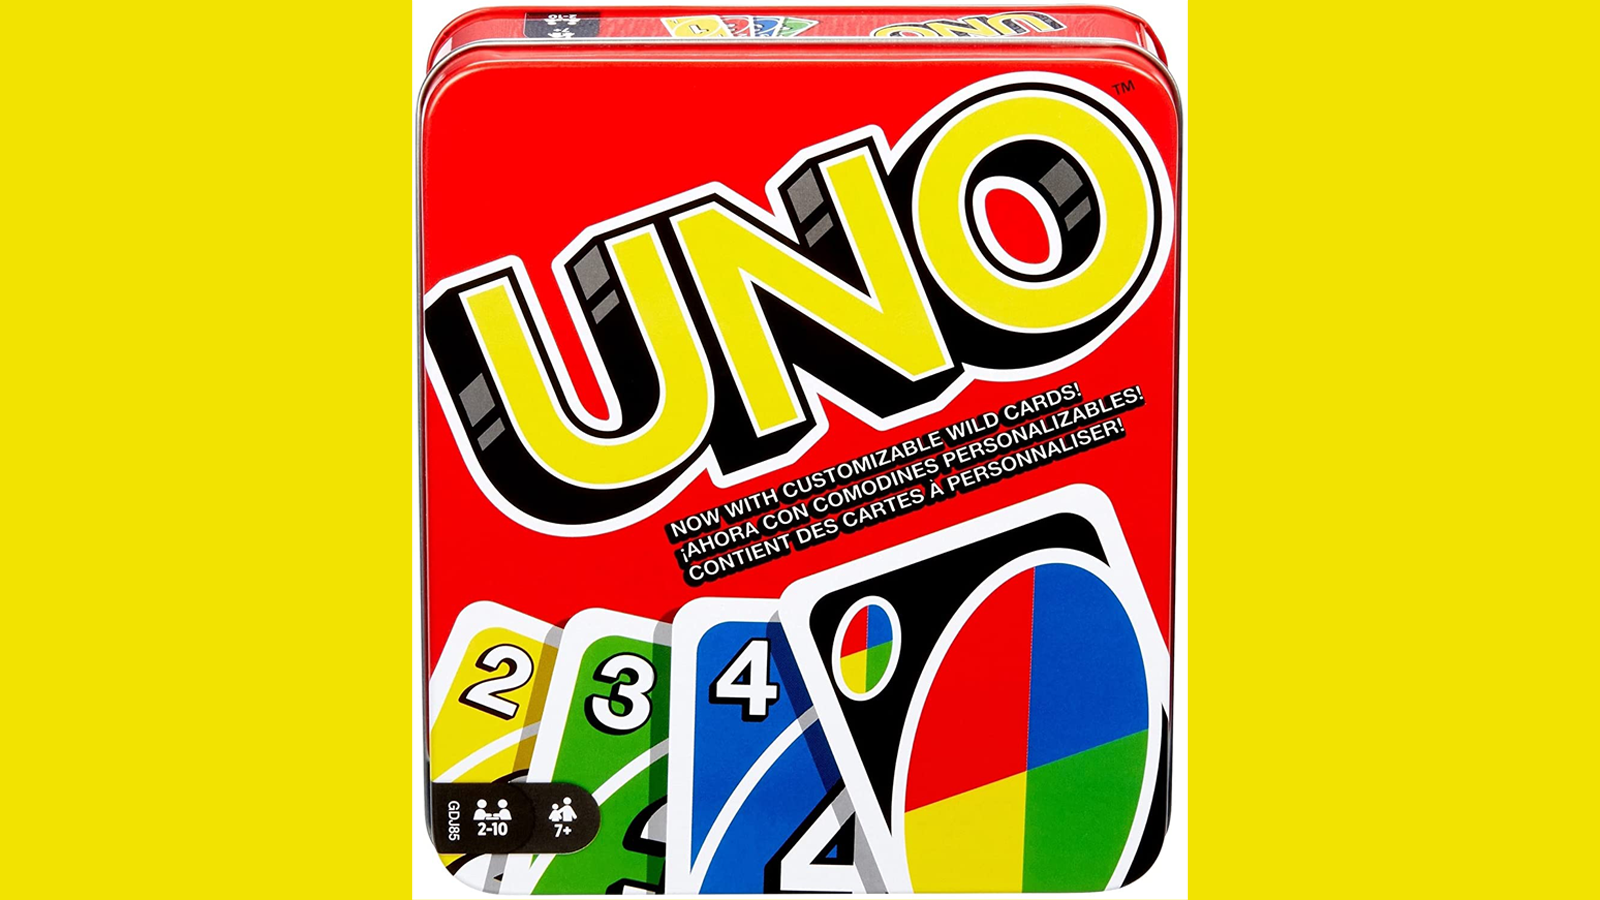 Round Out Your Family Game Collection with the Classic UNO Card Game